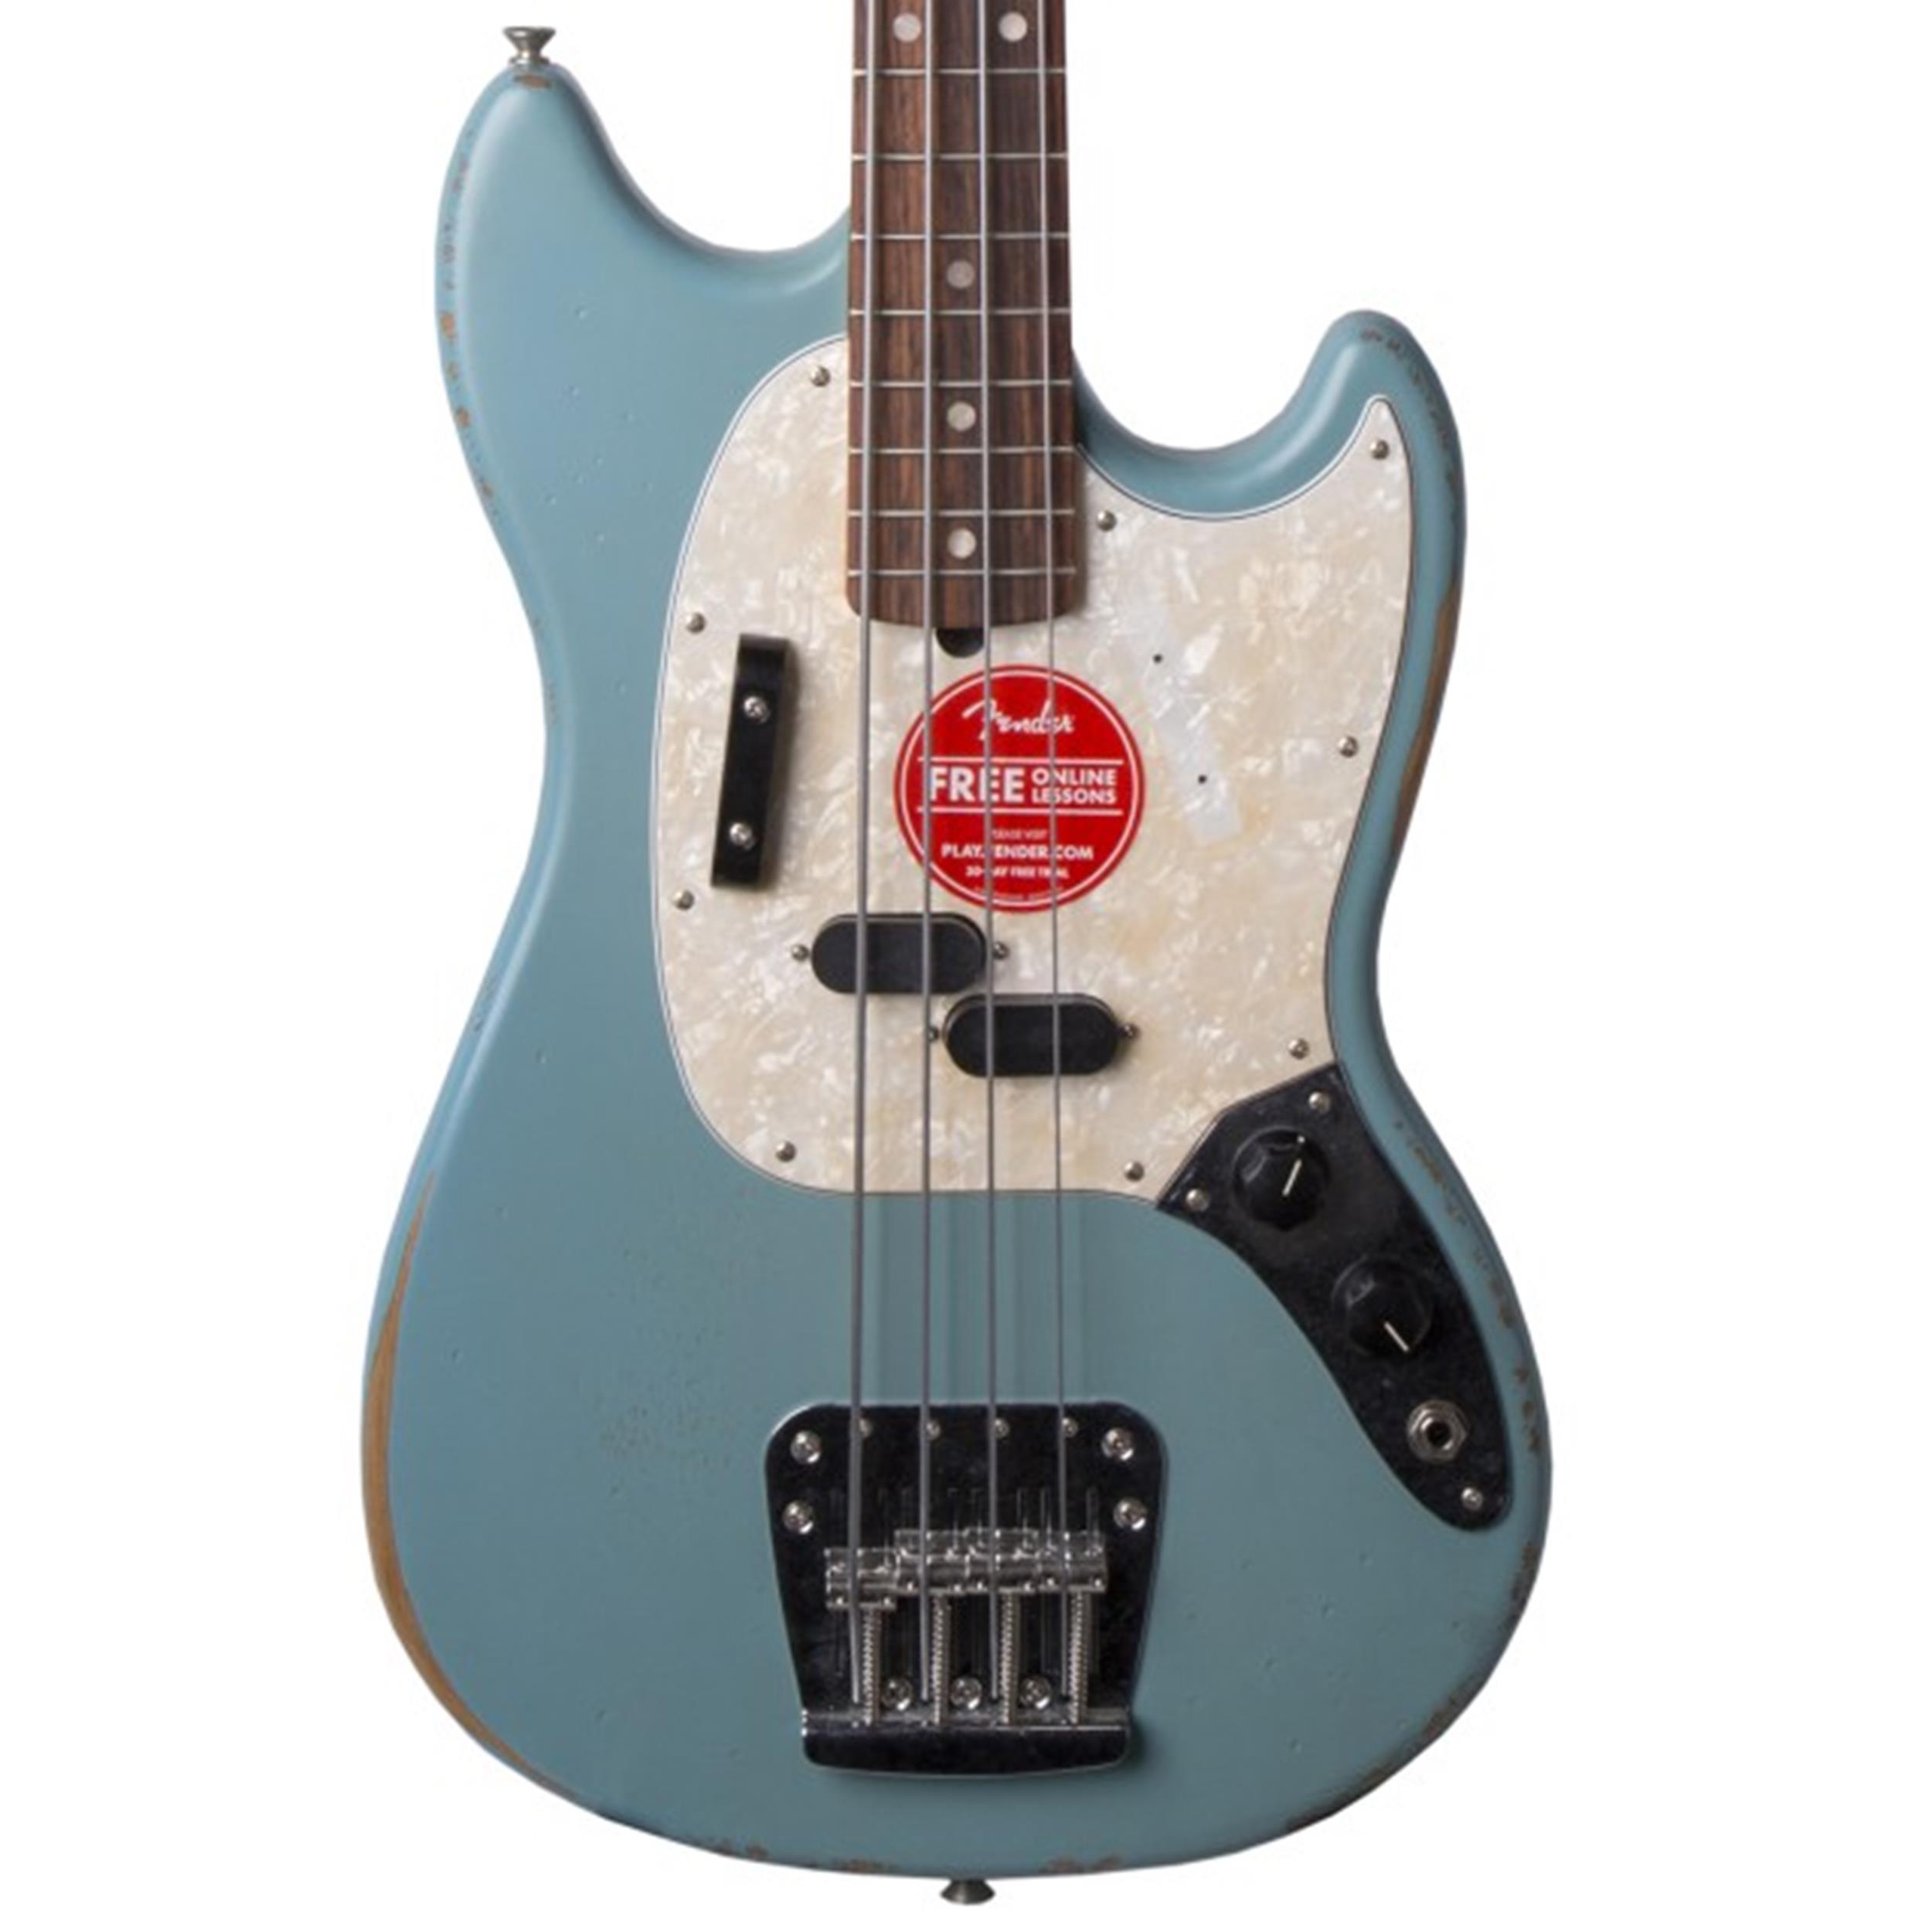 FENDER JMJ Road Worn Mustang Bass RW Faded Daphne Blue Justin Meldal Johnsen s 0144060390